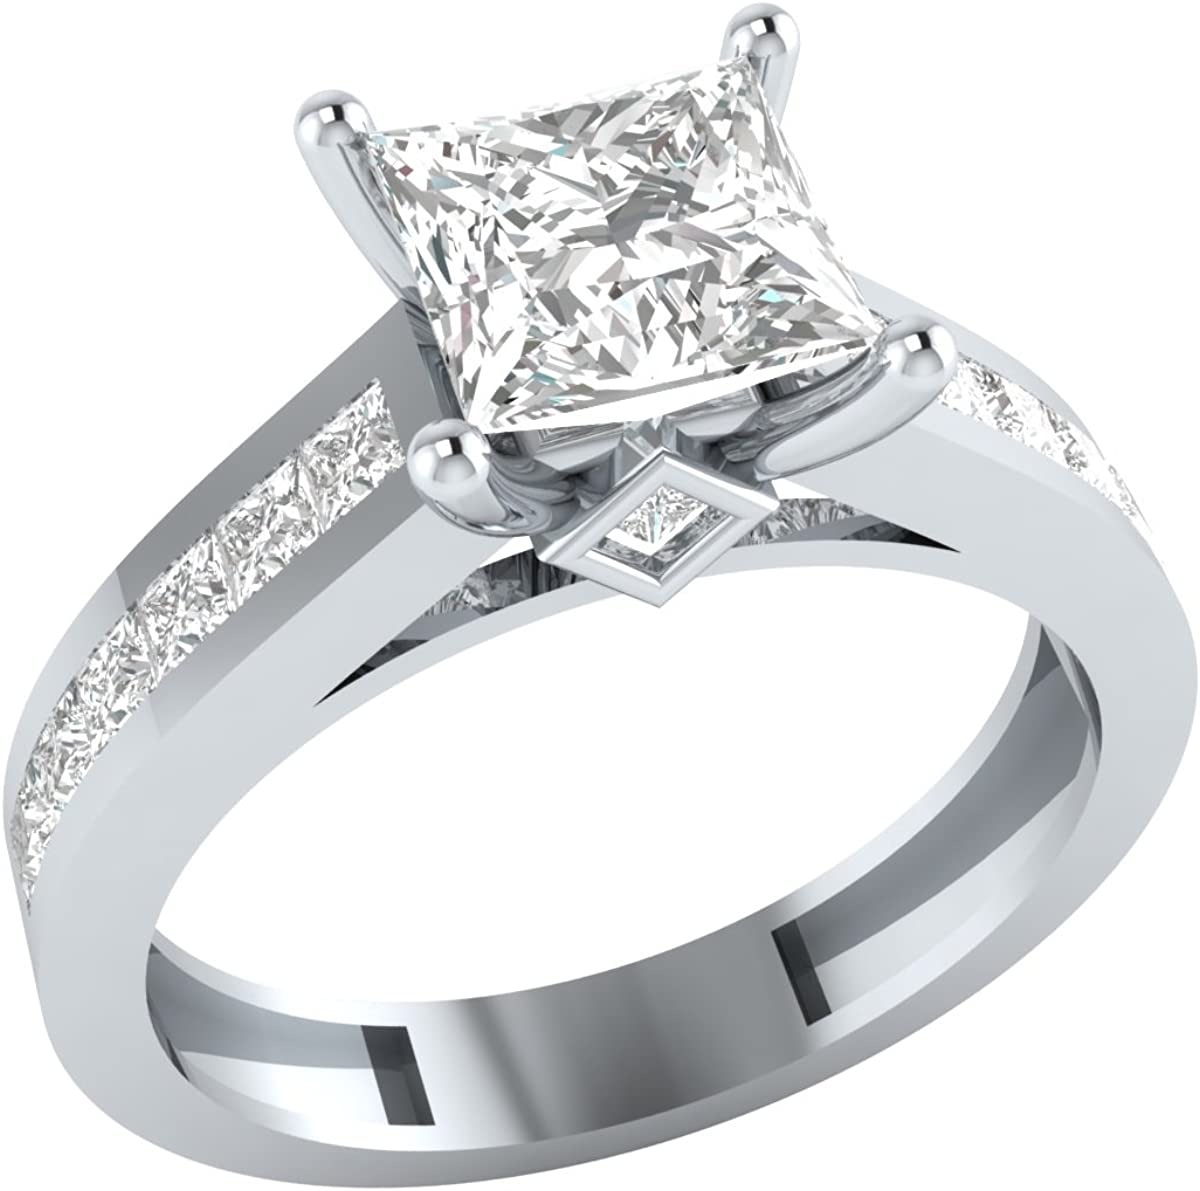 Amazon Com Demira Jewels Solid 10k White Gold Princess Cut Cubic Zirconia Solitaire Wedding Engagement Ring Jewelry